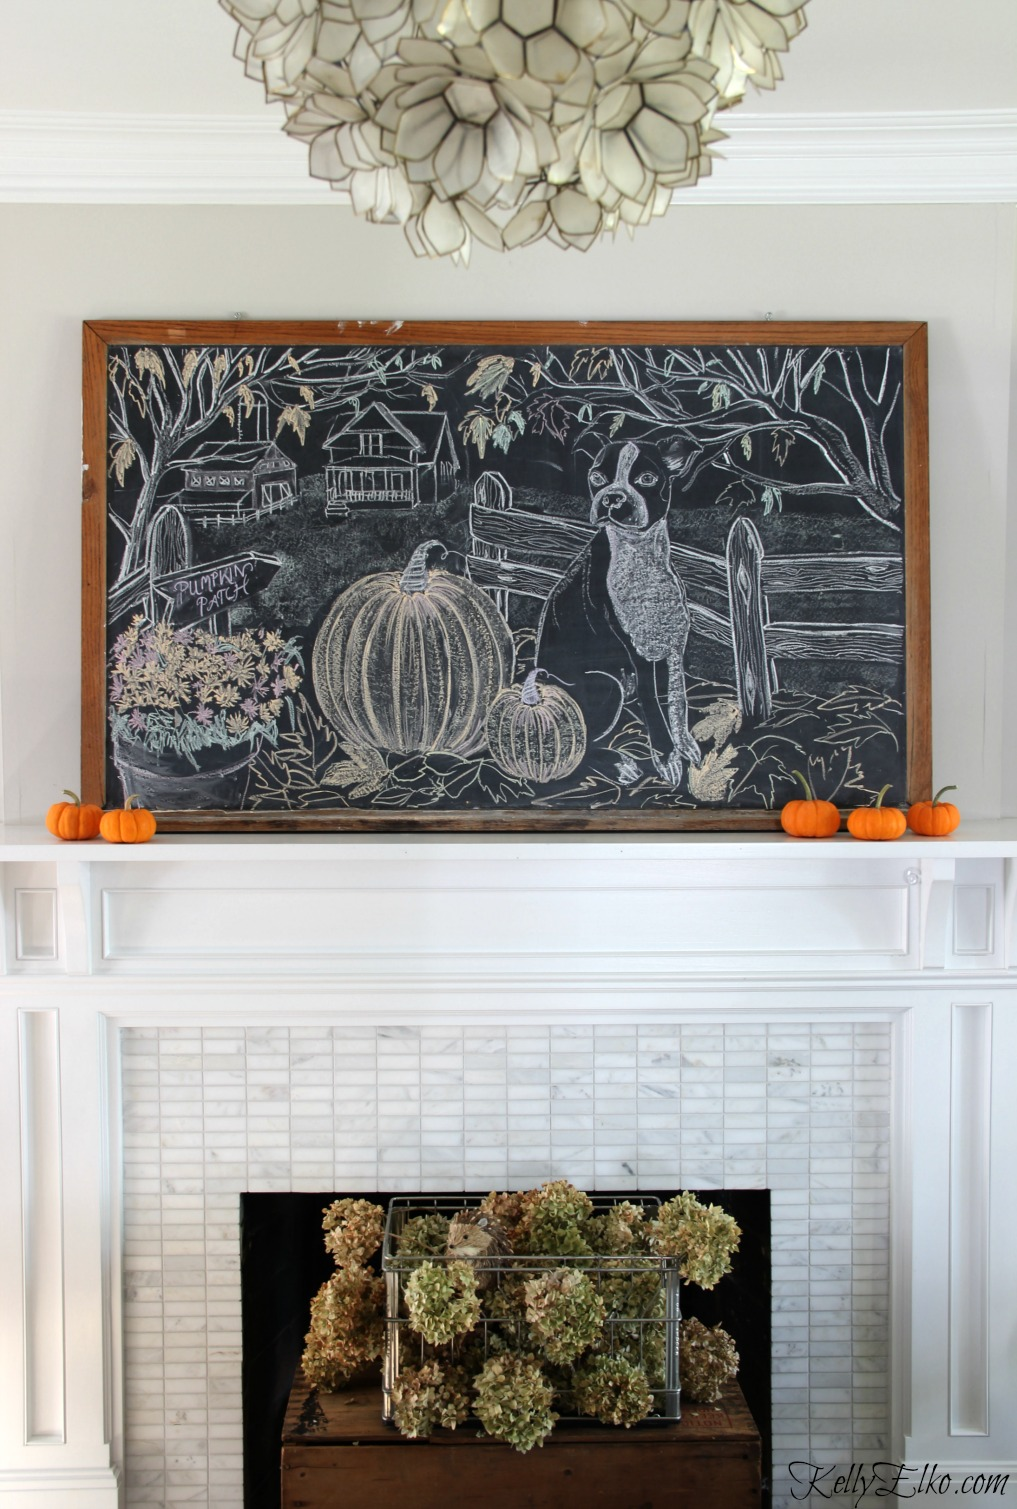 Creative Ideas to Decorate a Fireplace Opening kellyelko.com #fireplace #mantels #fireplacedecor #manteldecor #interiordecor #decorate #falldecor #fallmantel #vintagedecor #chalkboard #chalkboardart